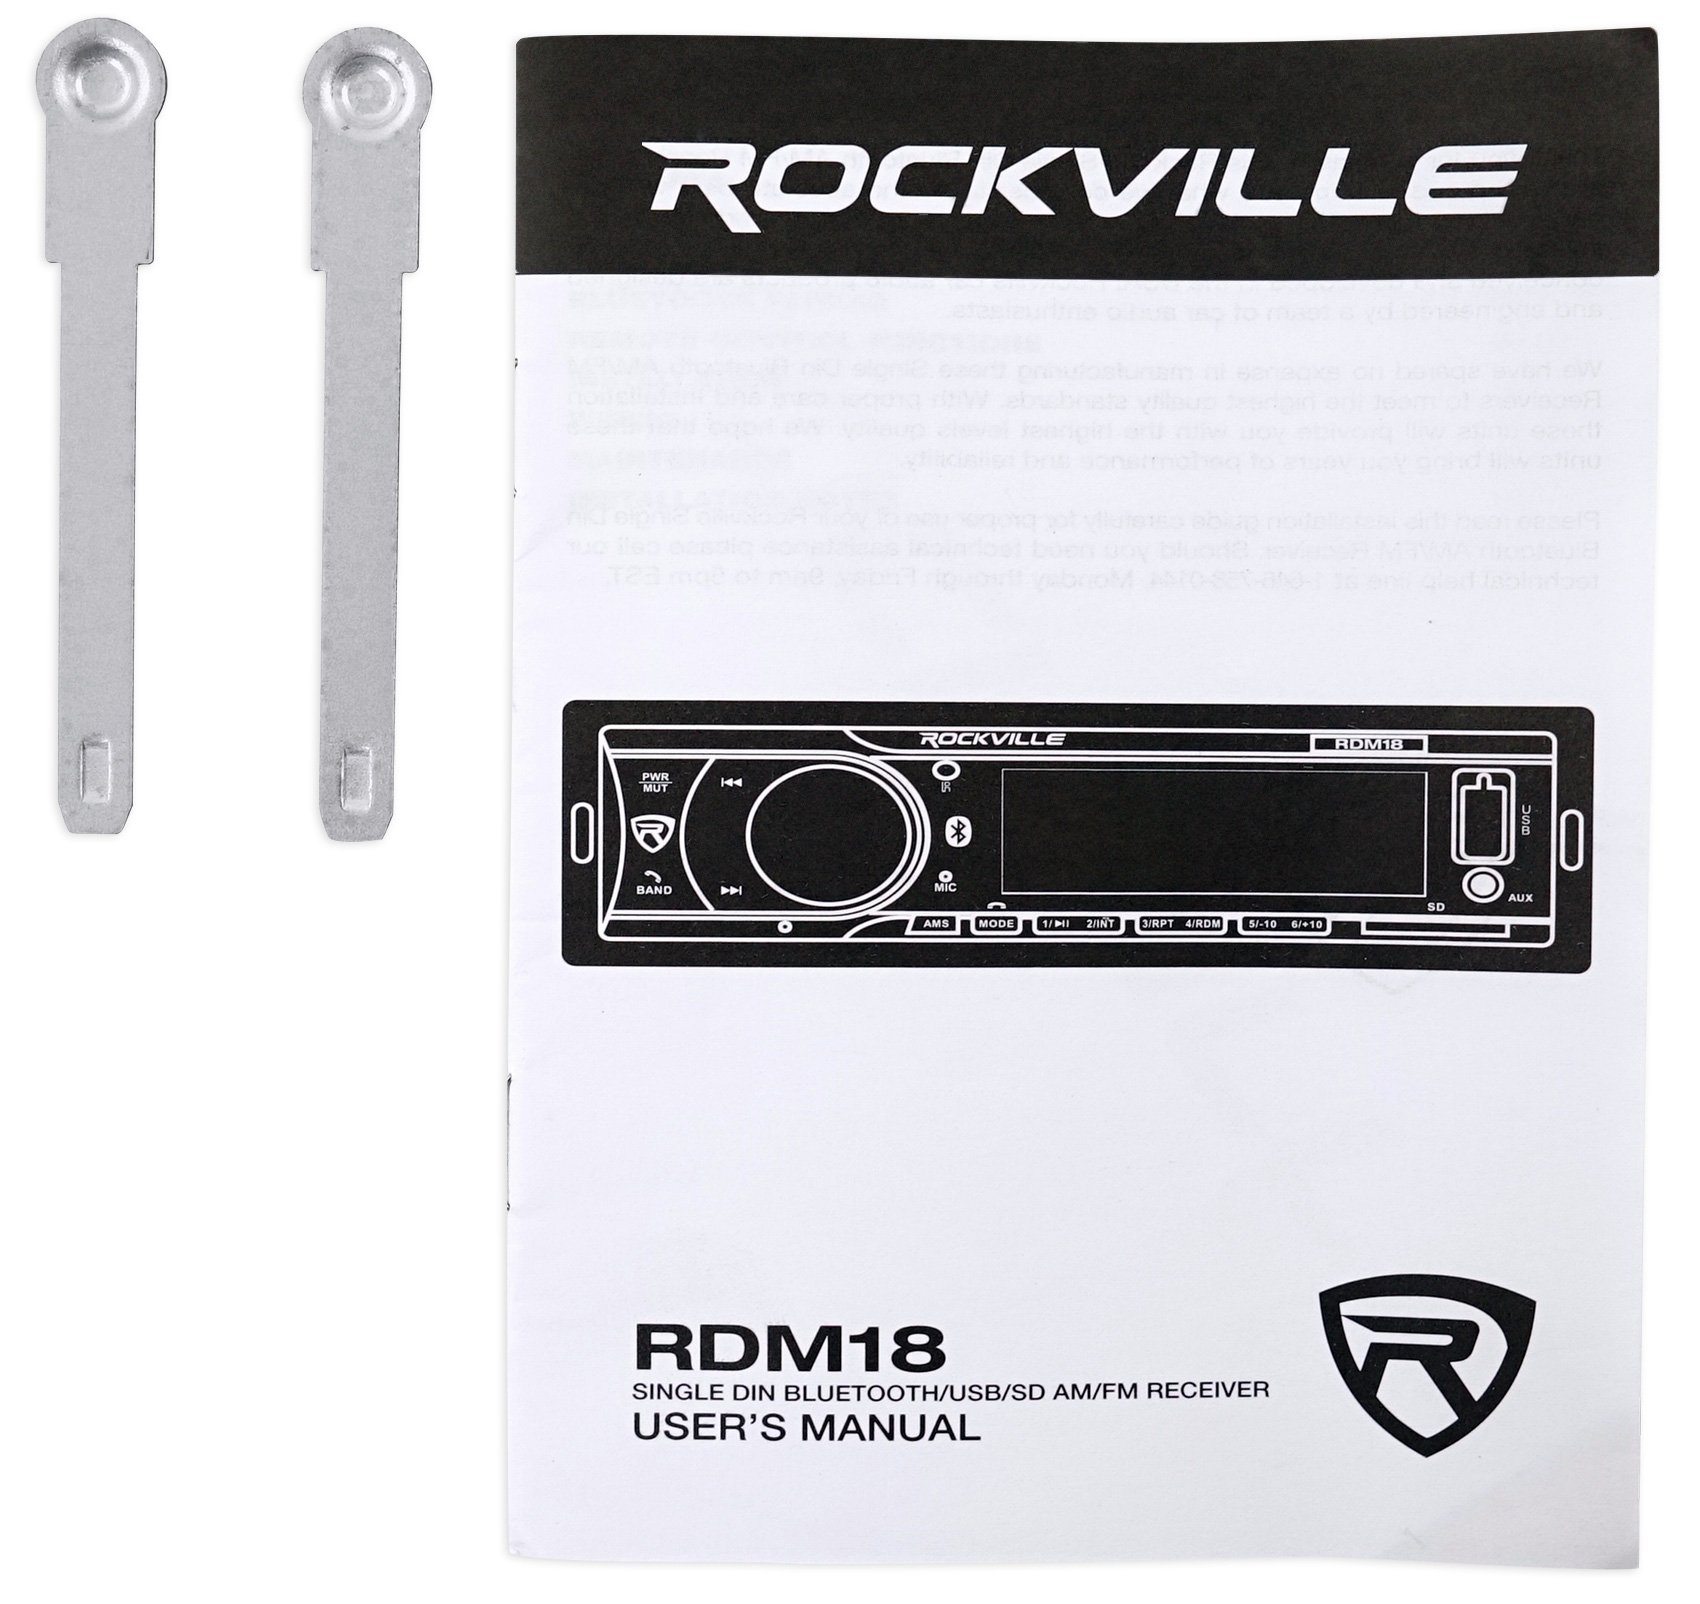 Car Digital Media Bluetooth AM/FM/MP3 USB/SD Receiver For 2003-2007 Honda Accord by Rockville (Image #7)